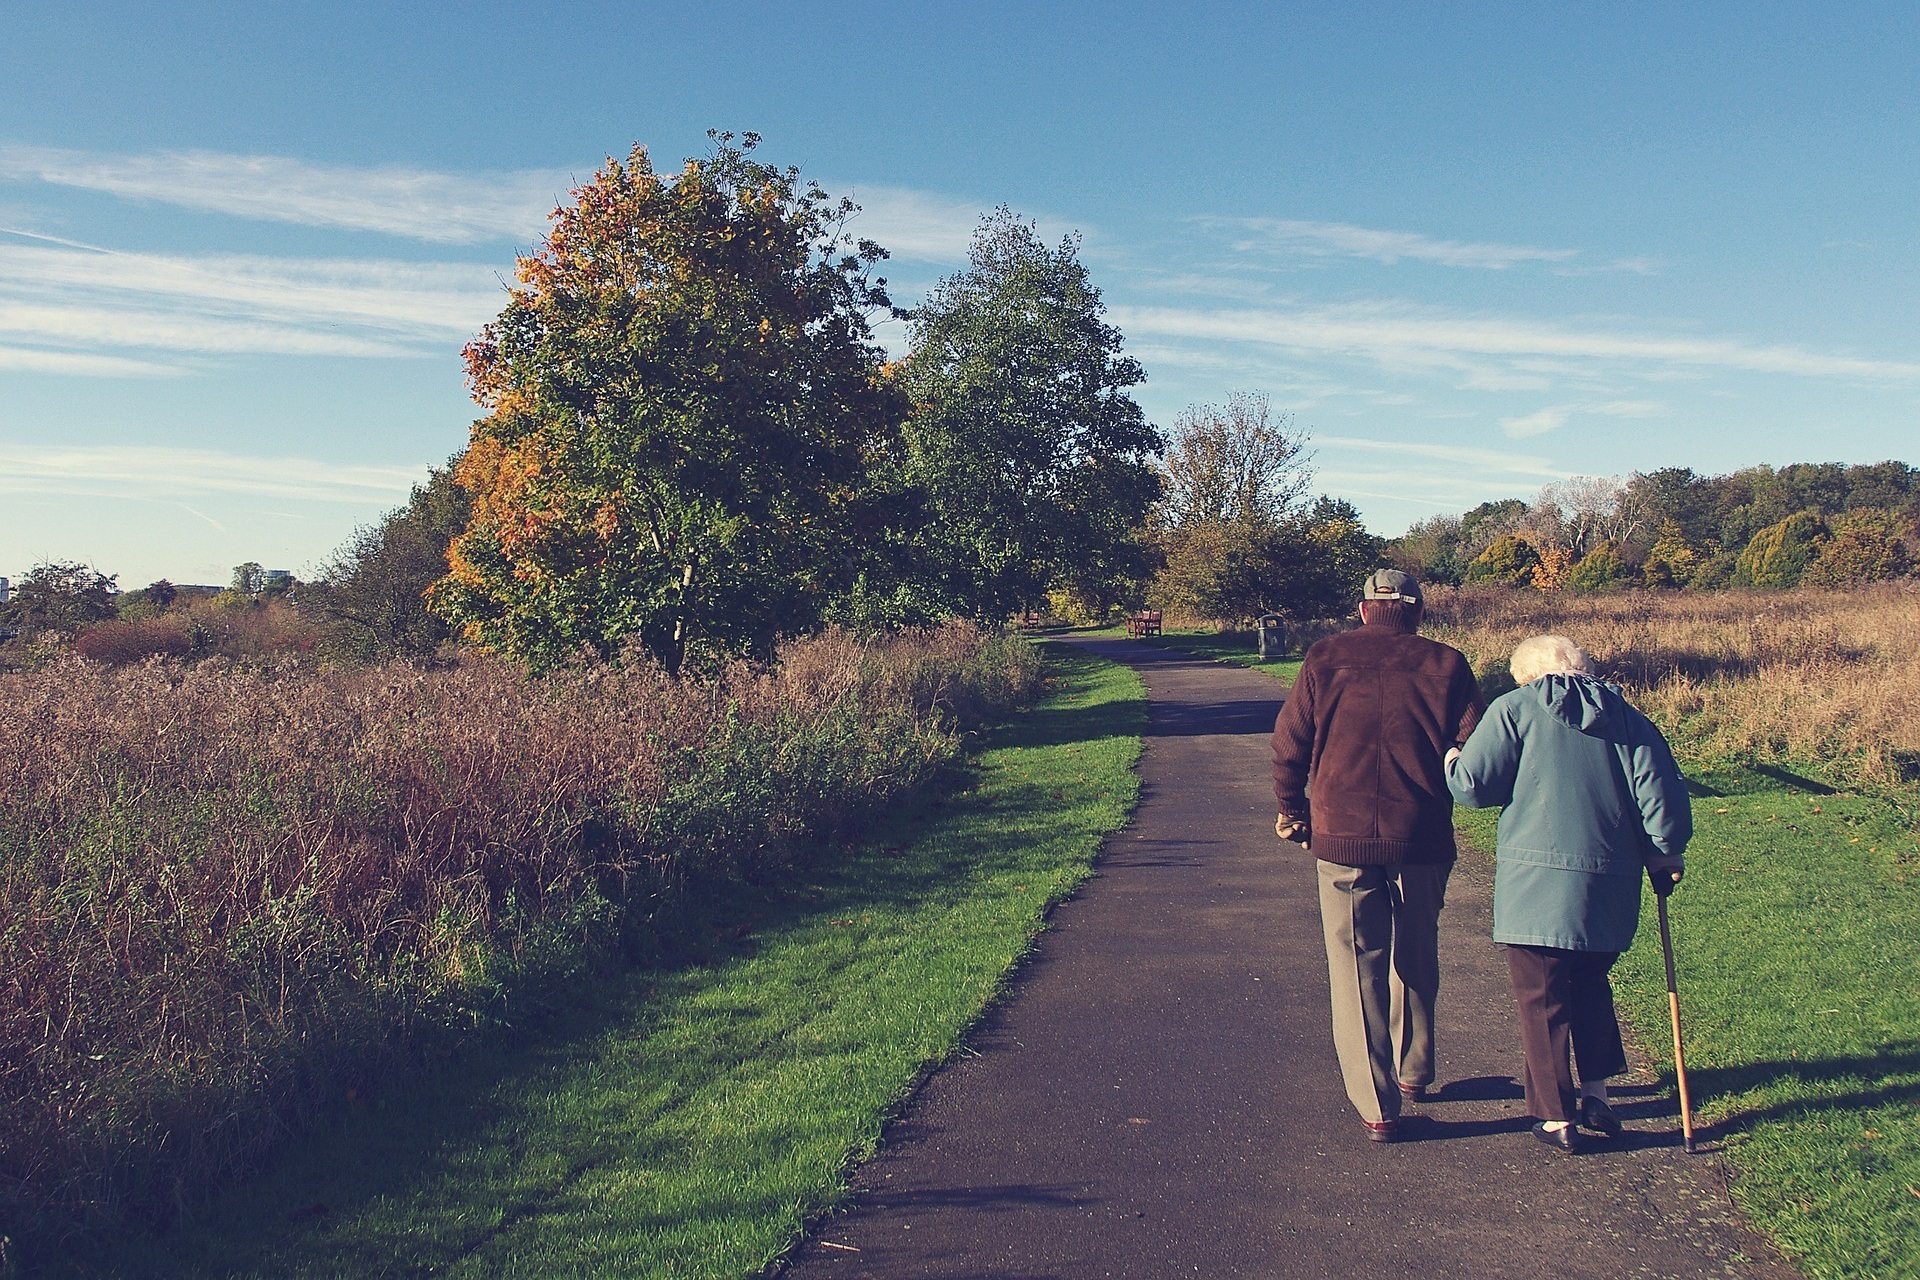 Elderly+Couple+Walking+image.jpg